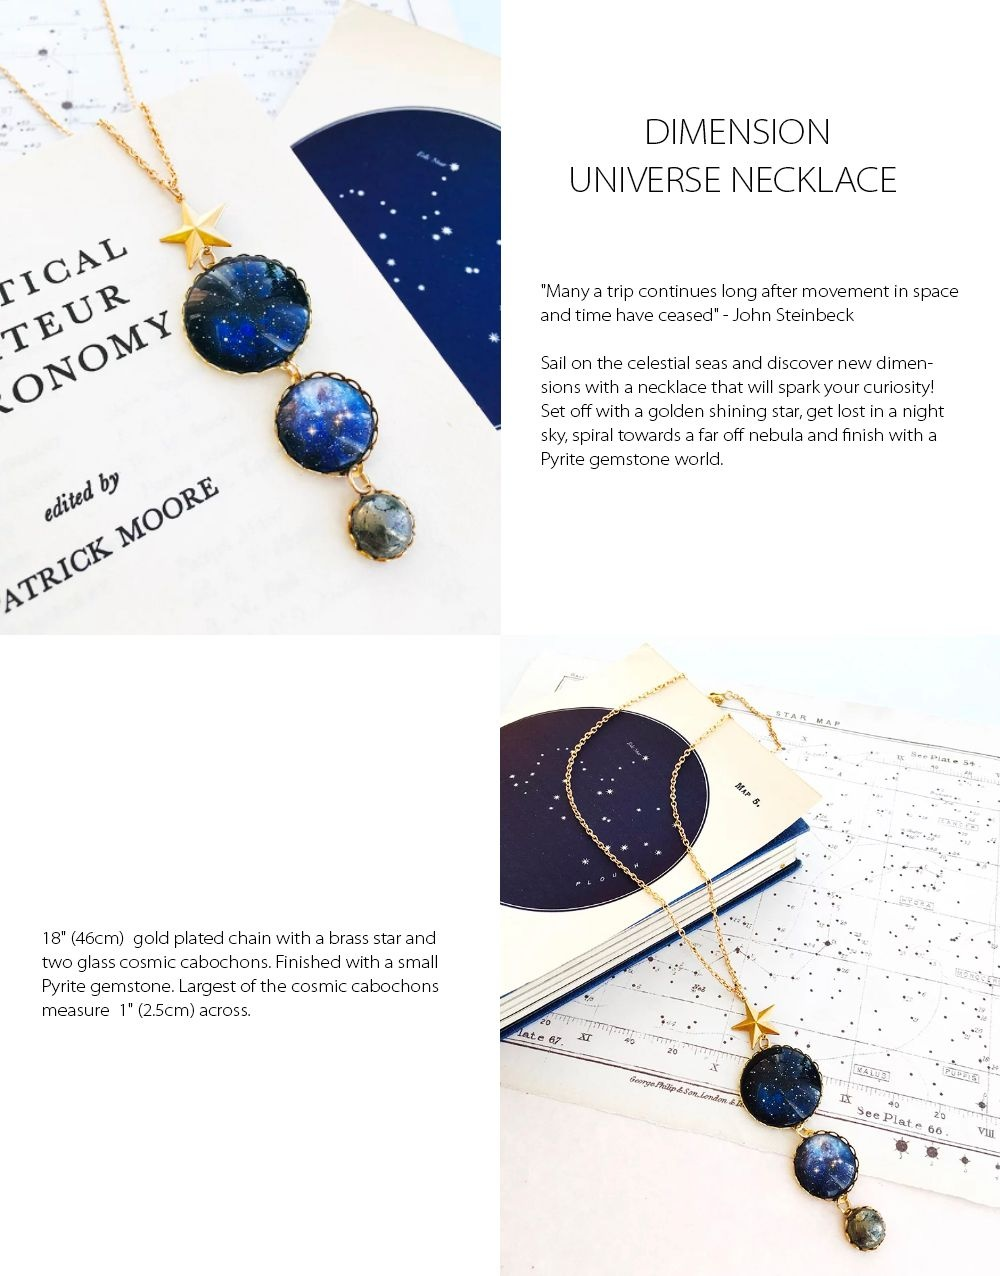 Universe Necklace Discover New Dimensions